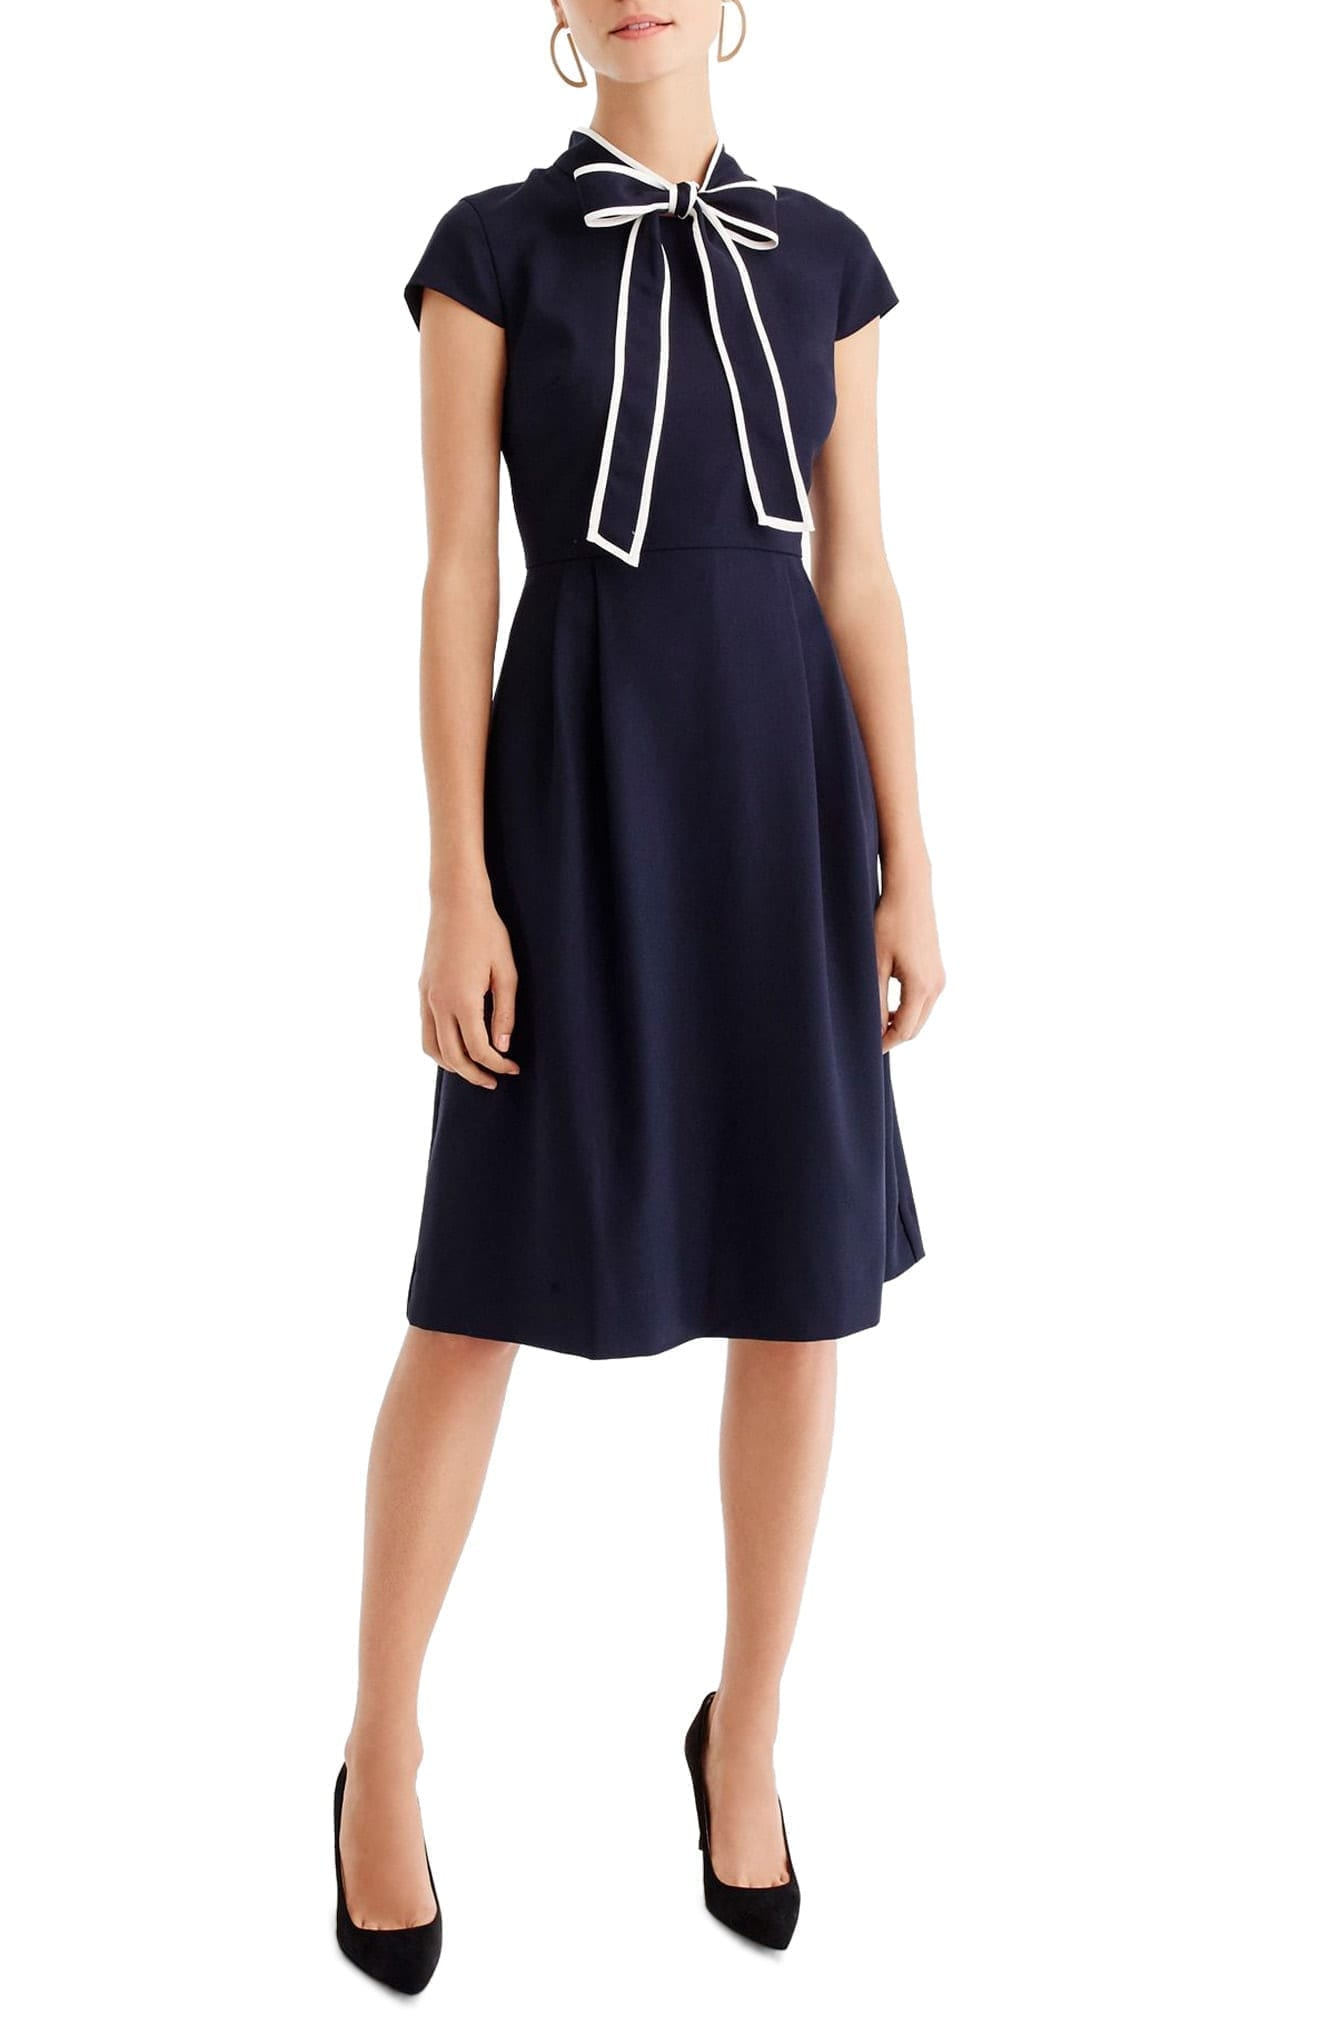 J.CREW Tie-Neck Navy Dress